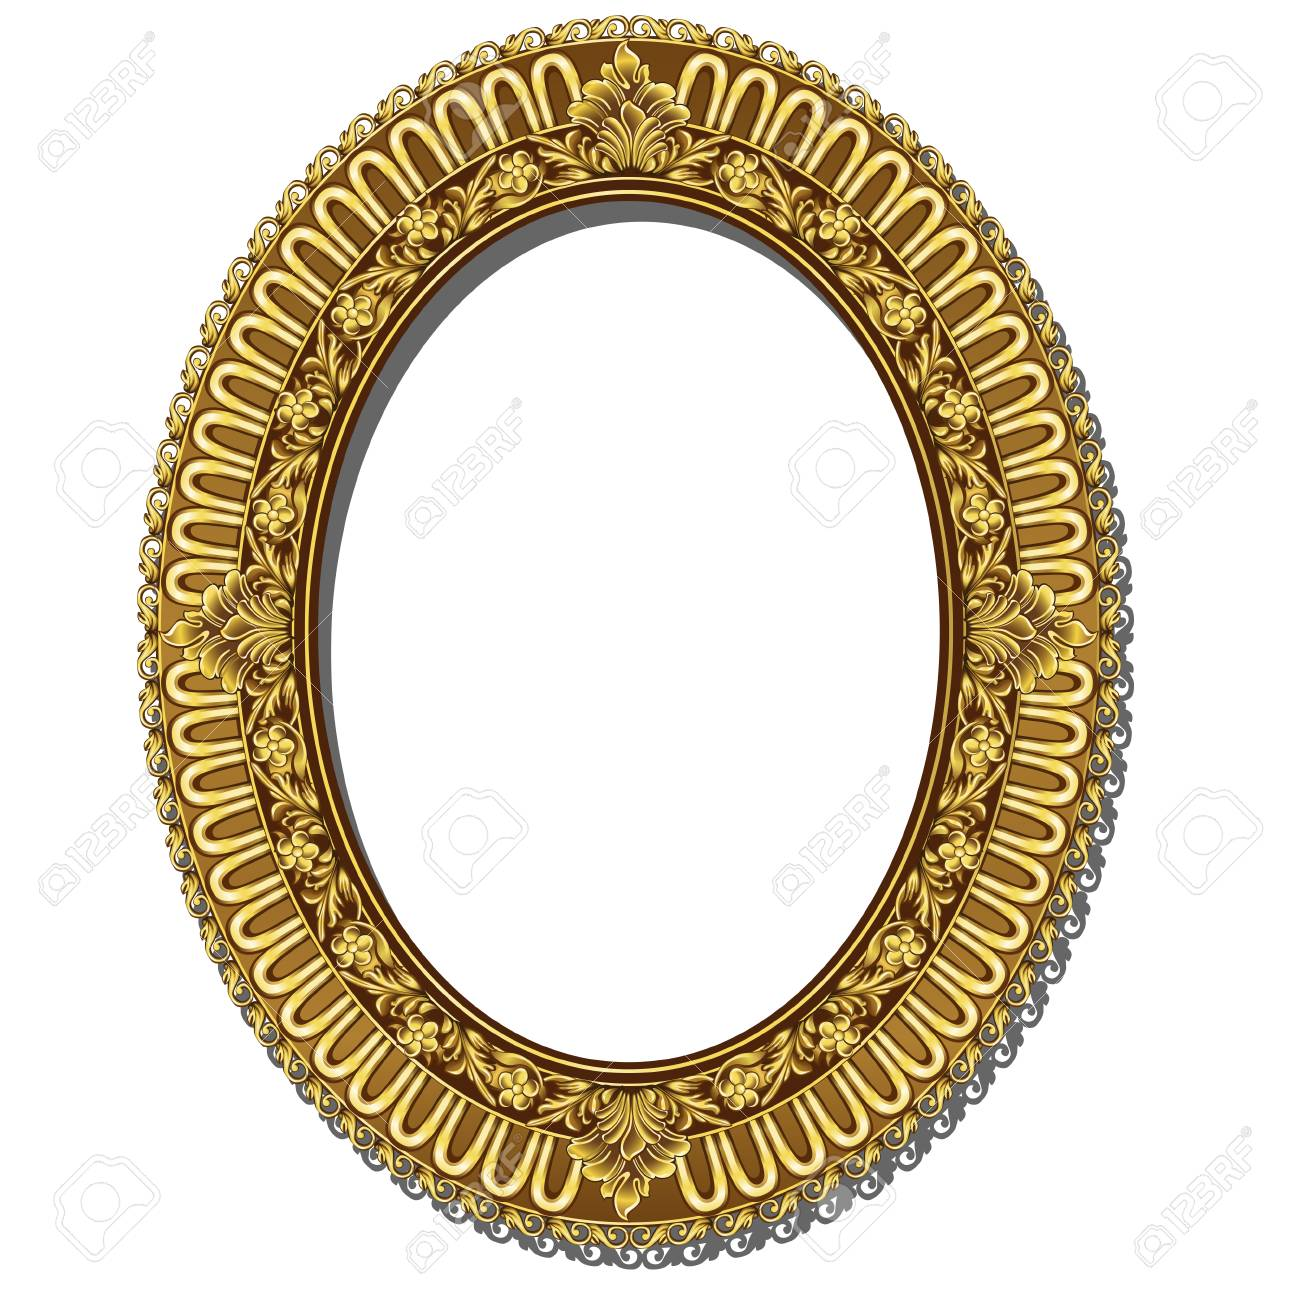 ca463d1a0863 Round Shaped Frame With Color Gold Border. Royalty Free Cliparts ...